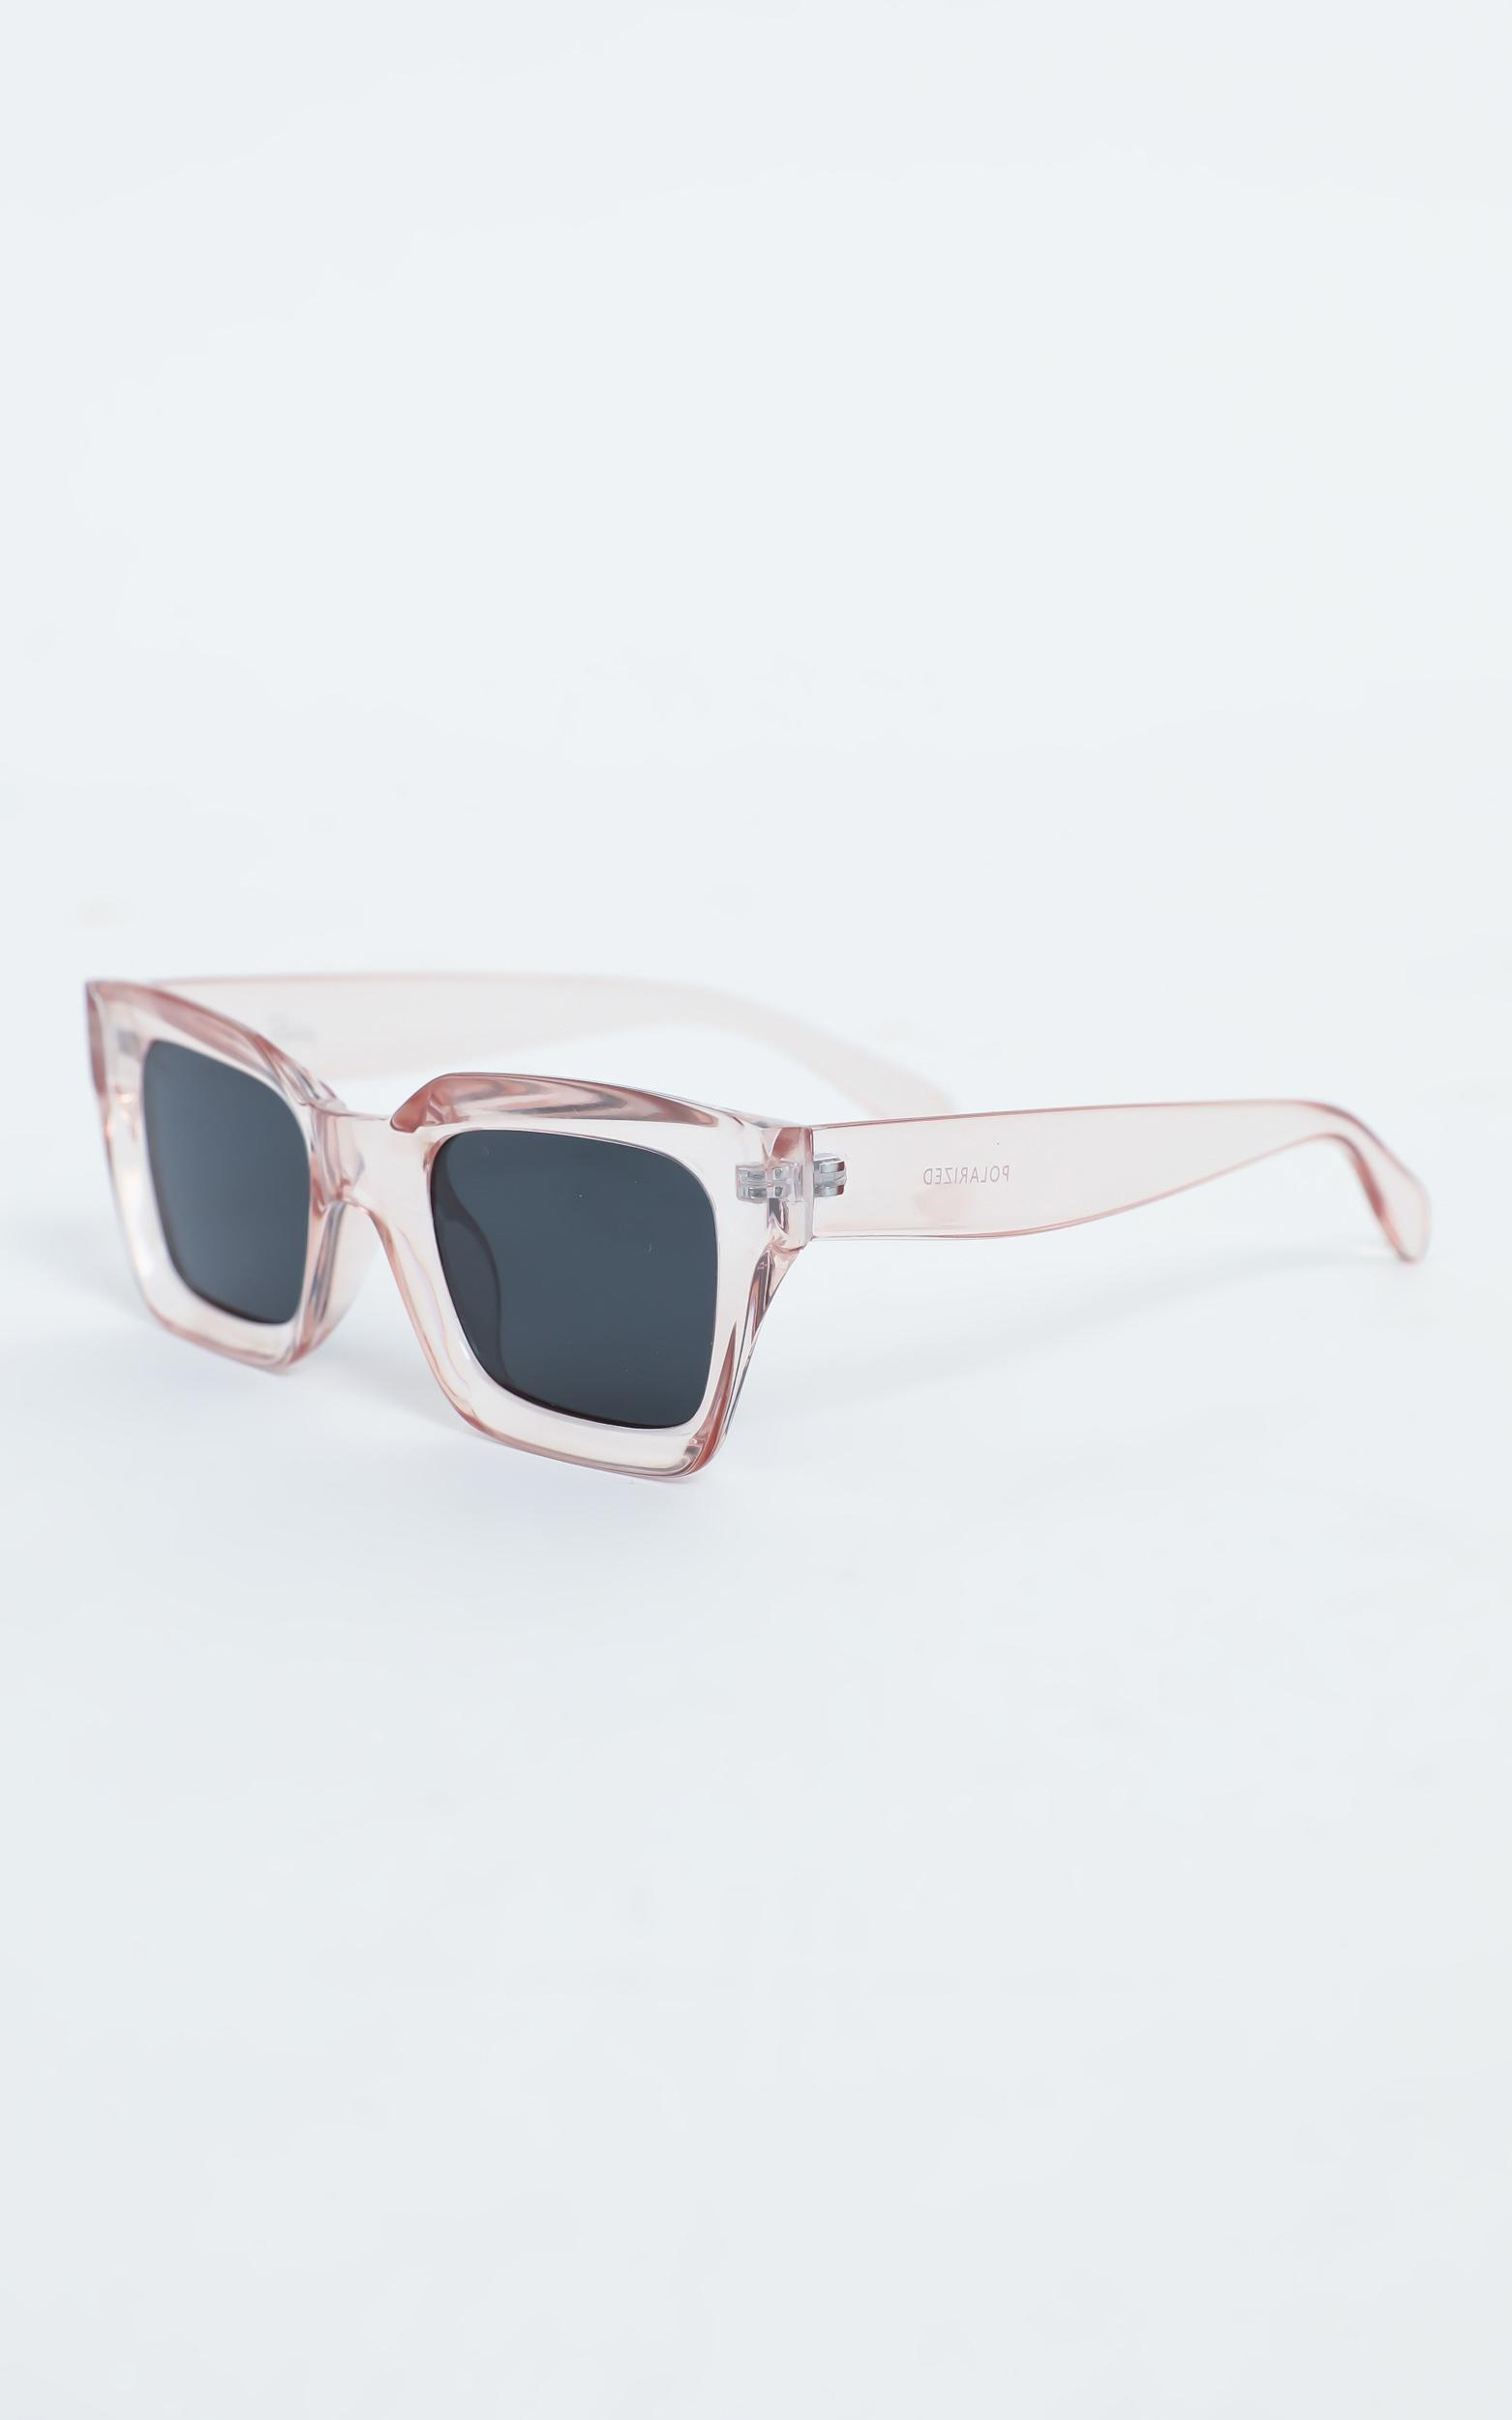 Reality Eyewear - Onassis Sunglasses in Berry, Pink, hi-res image number null